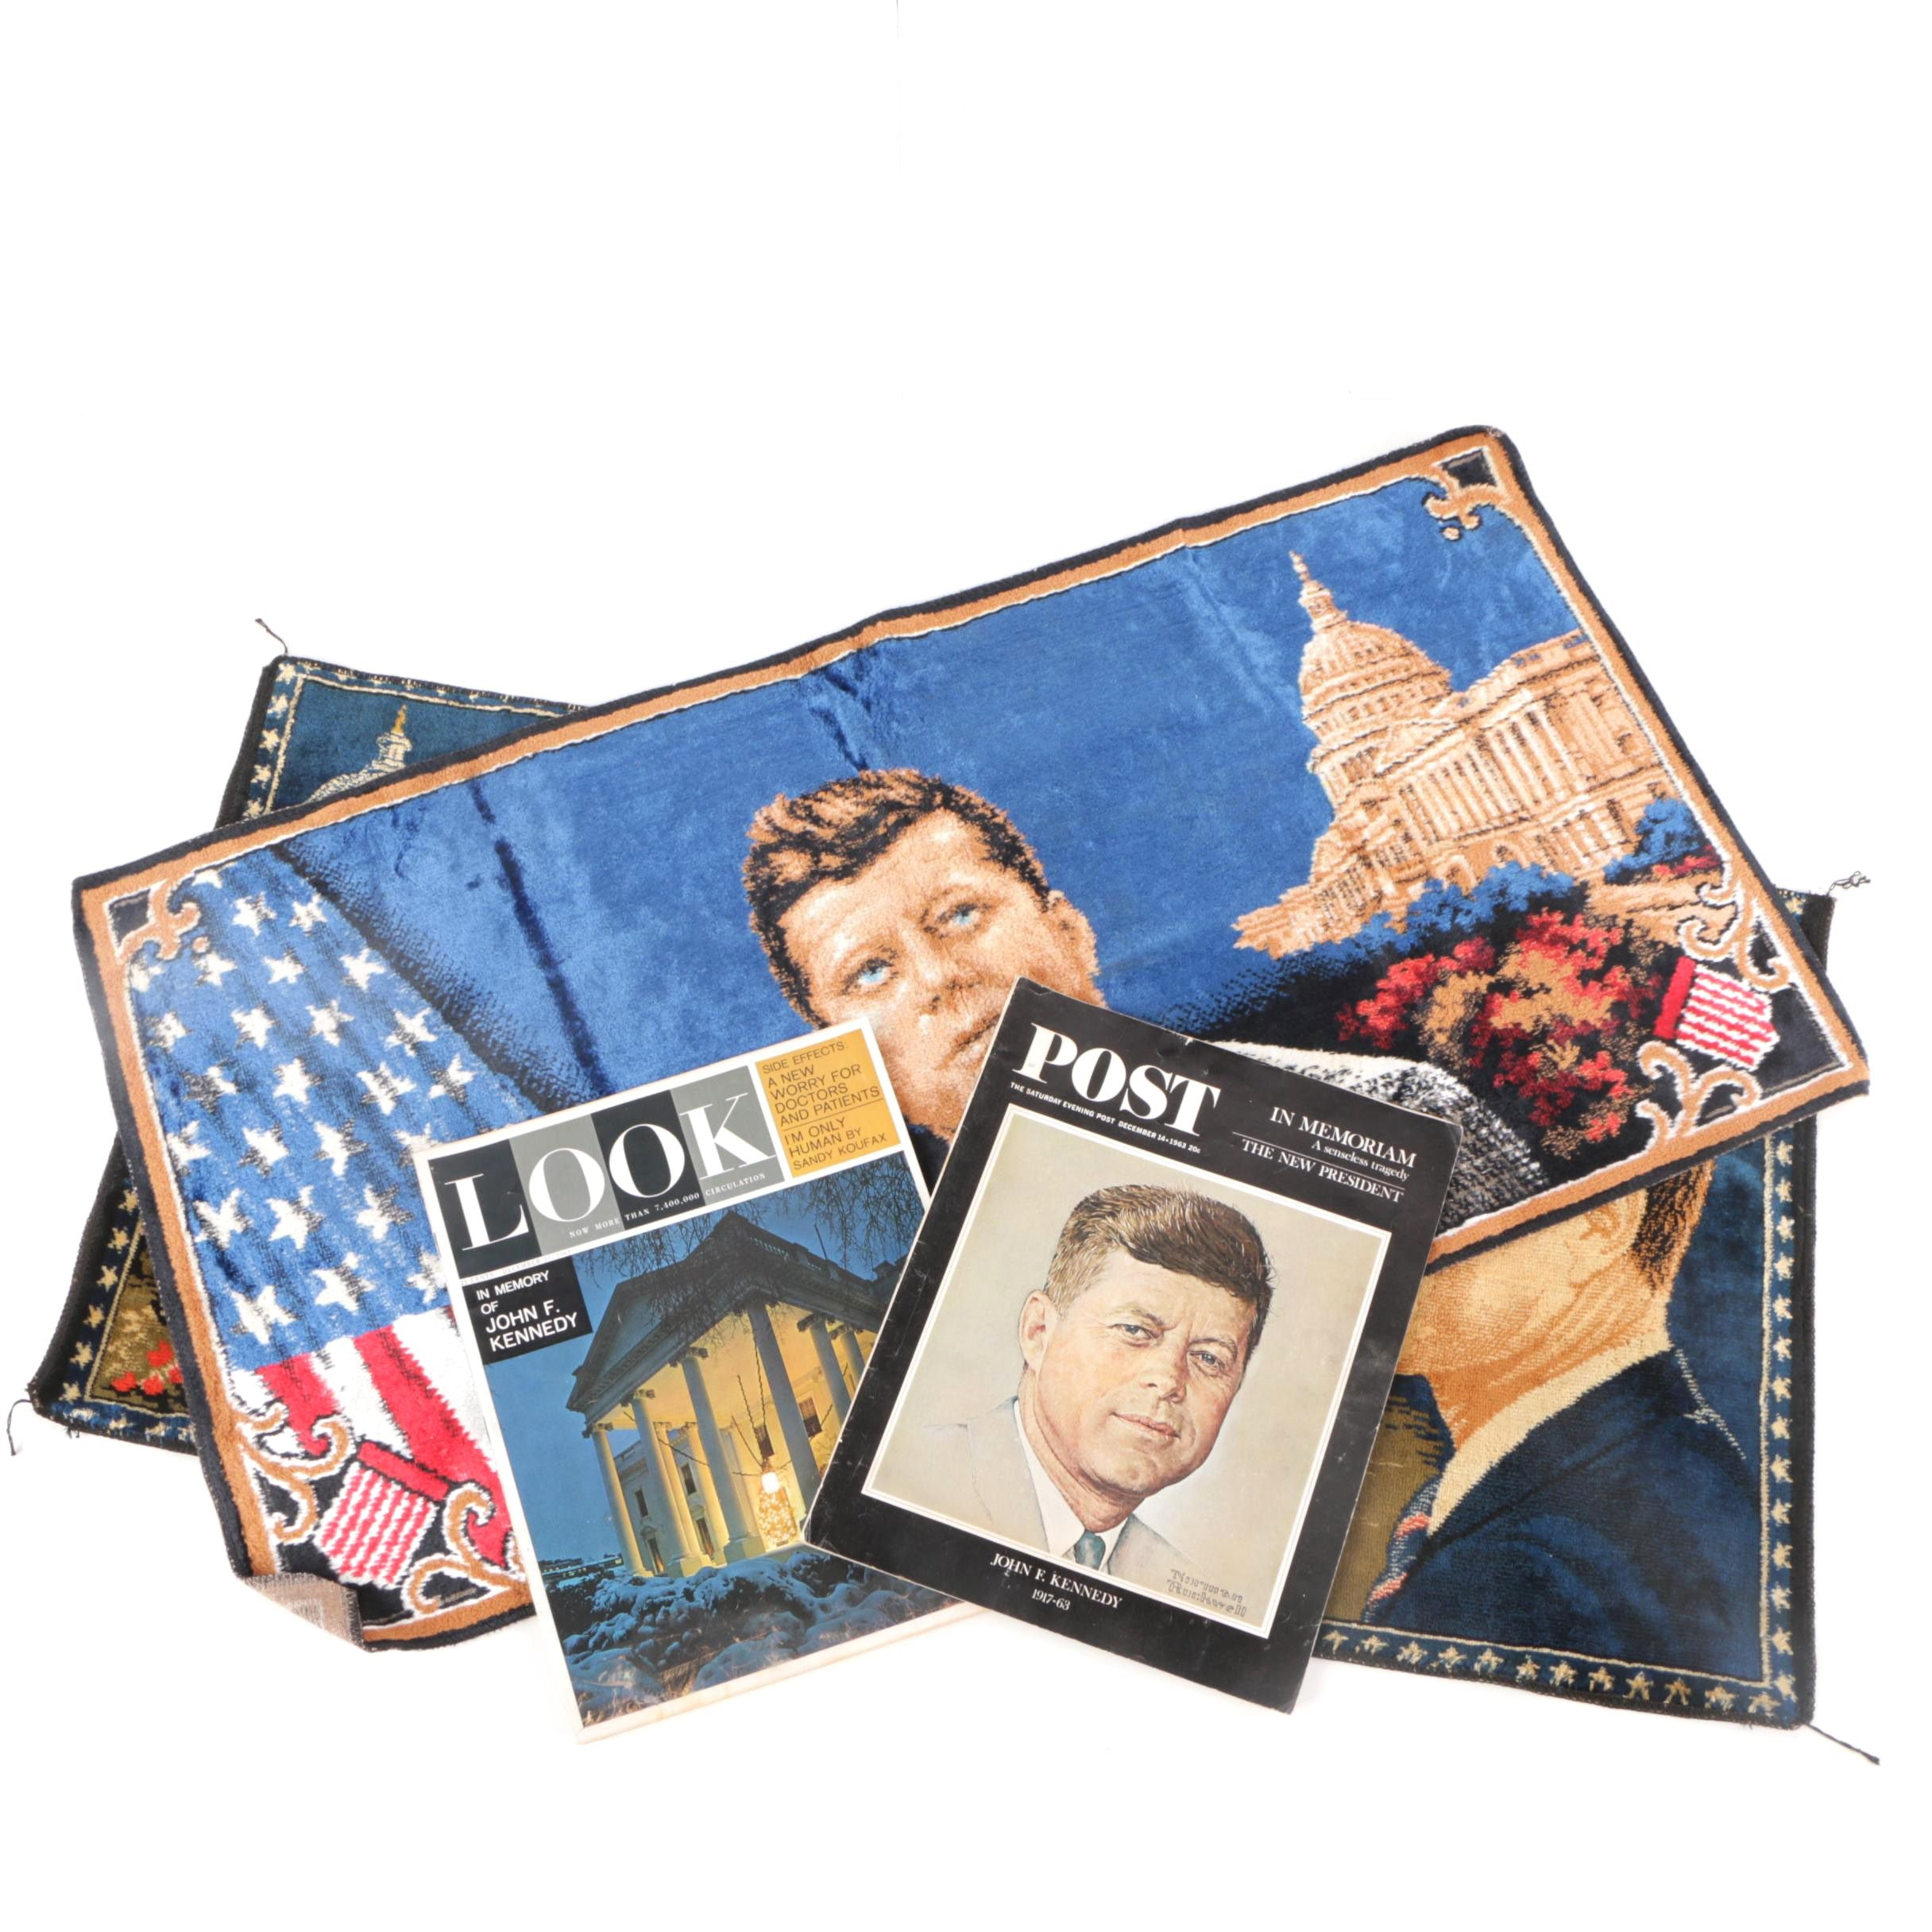 John F. Kennedy Cloth Tapestries and Memorial Magazines